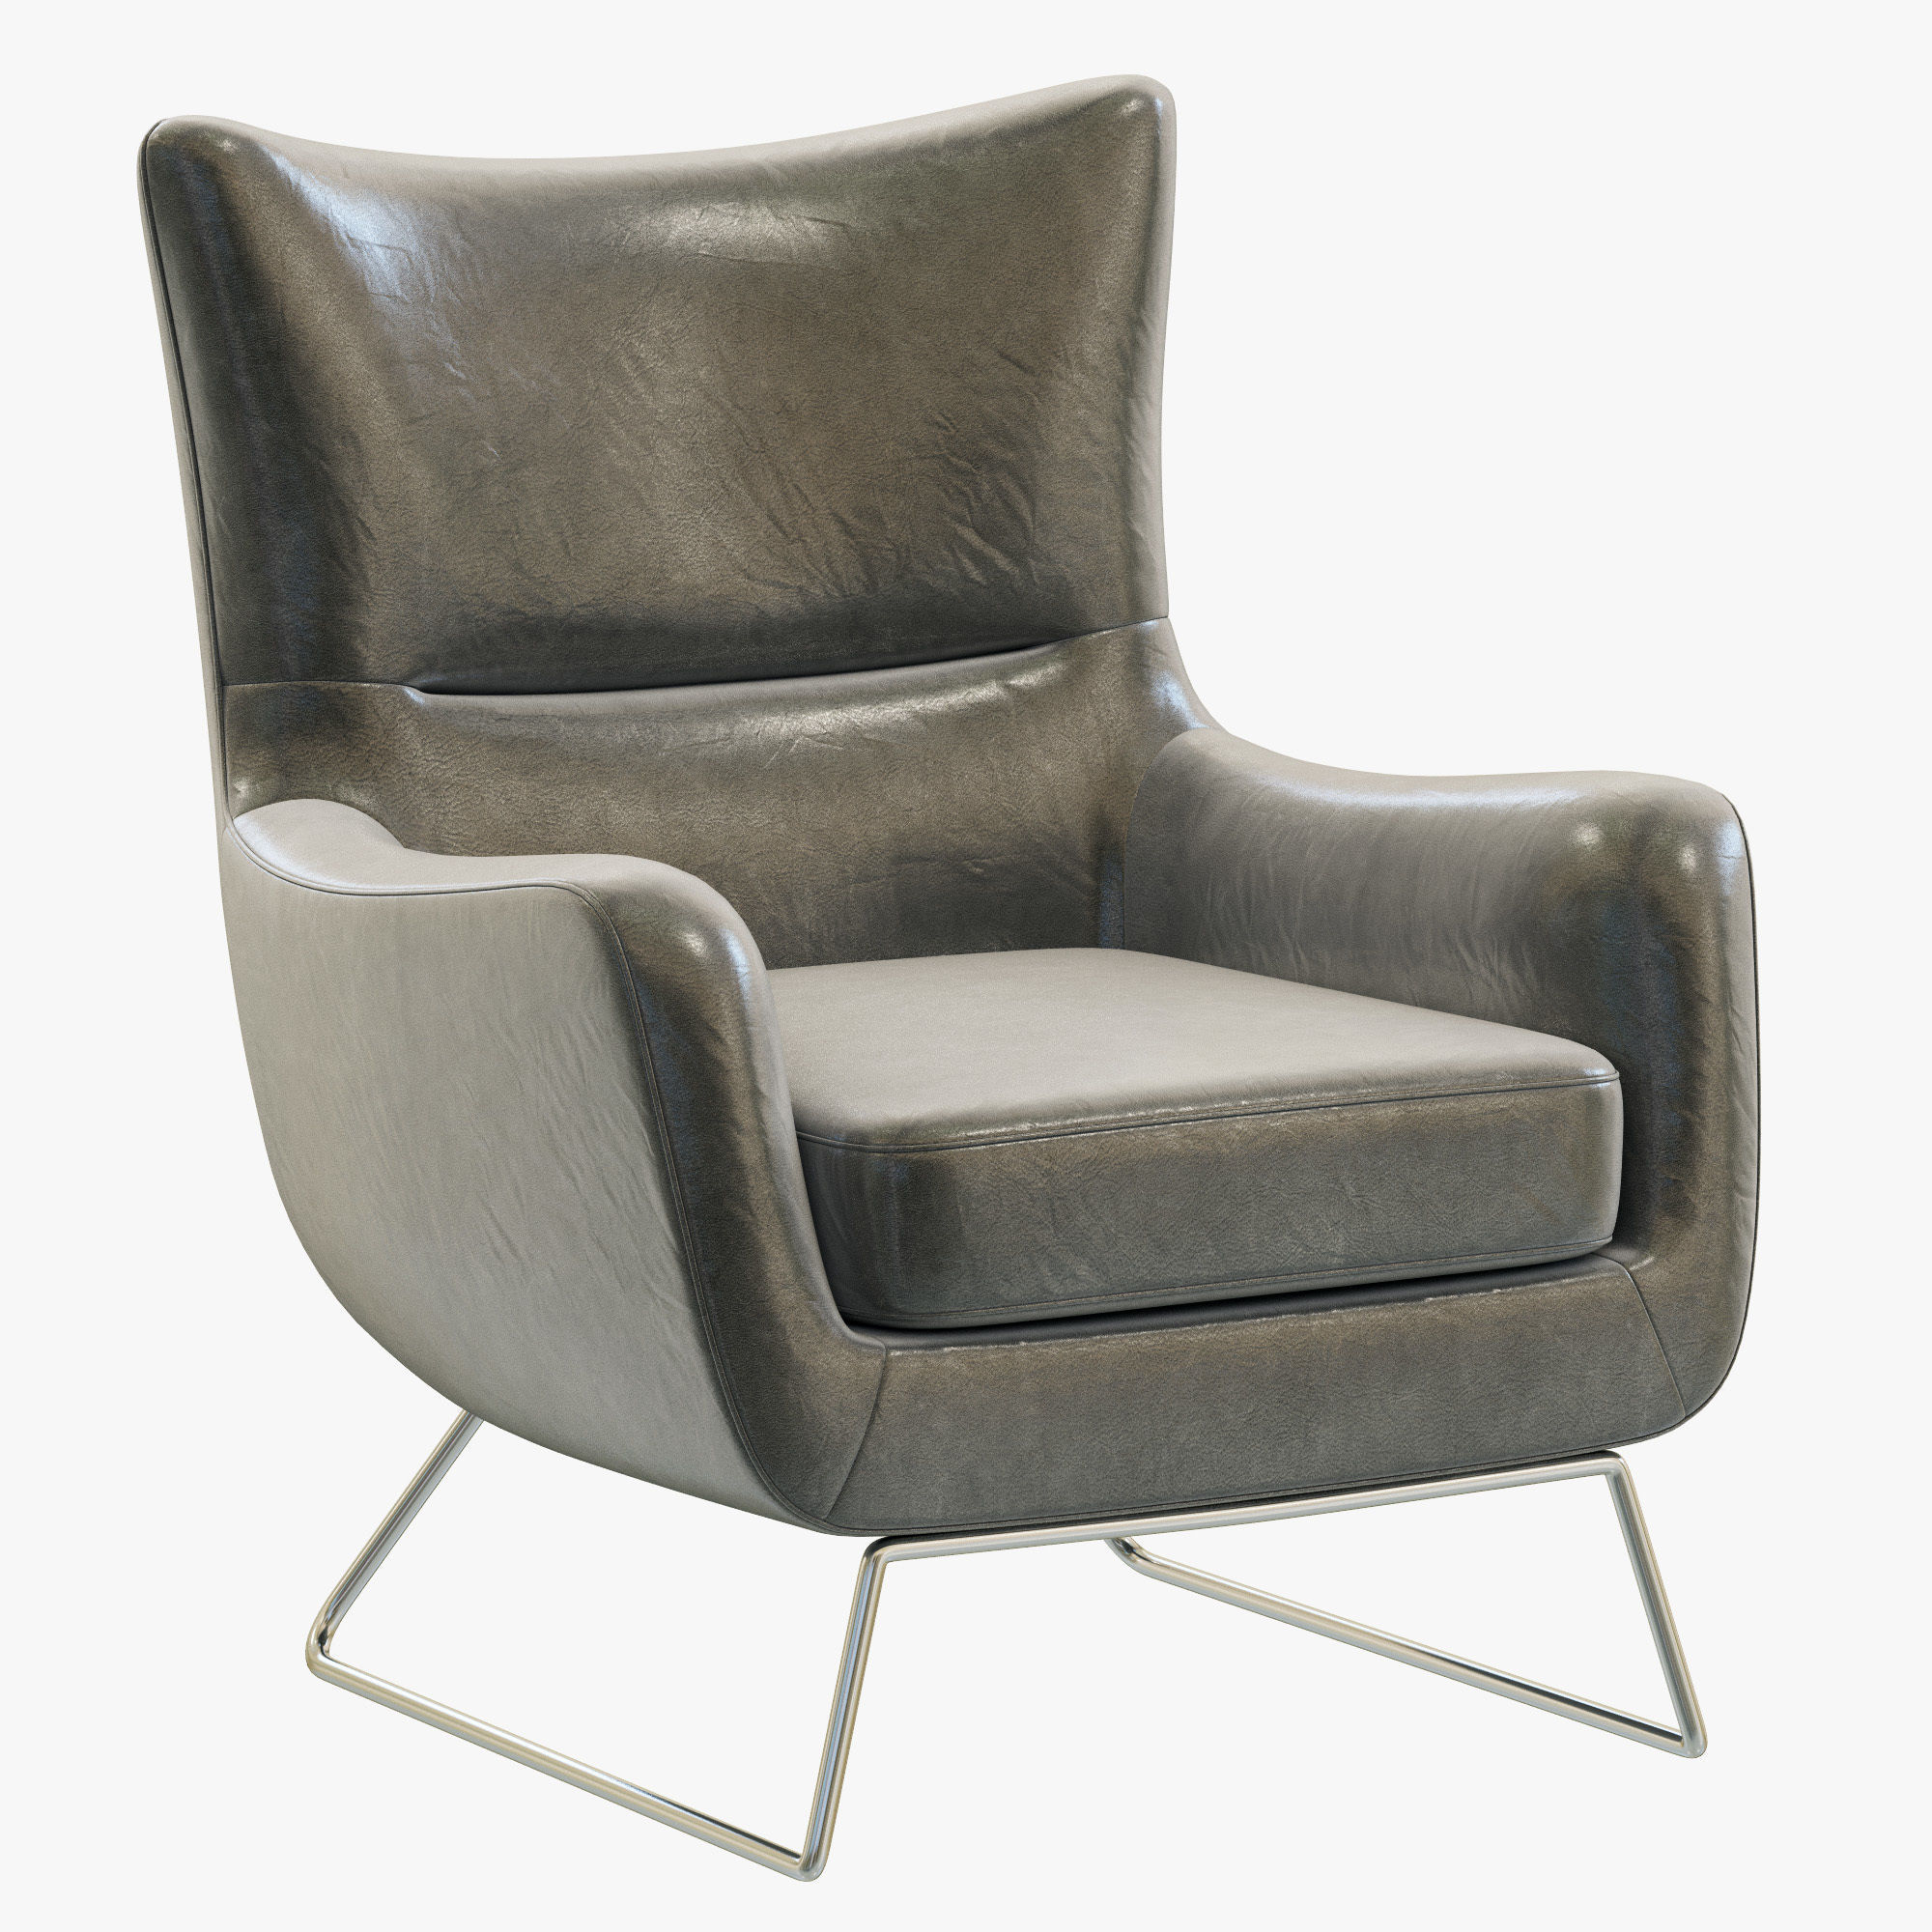 Modern Leather Chairs Rh Modern Liam Leather Chair 3d Model